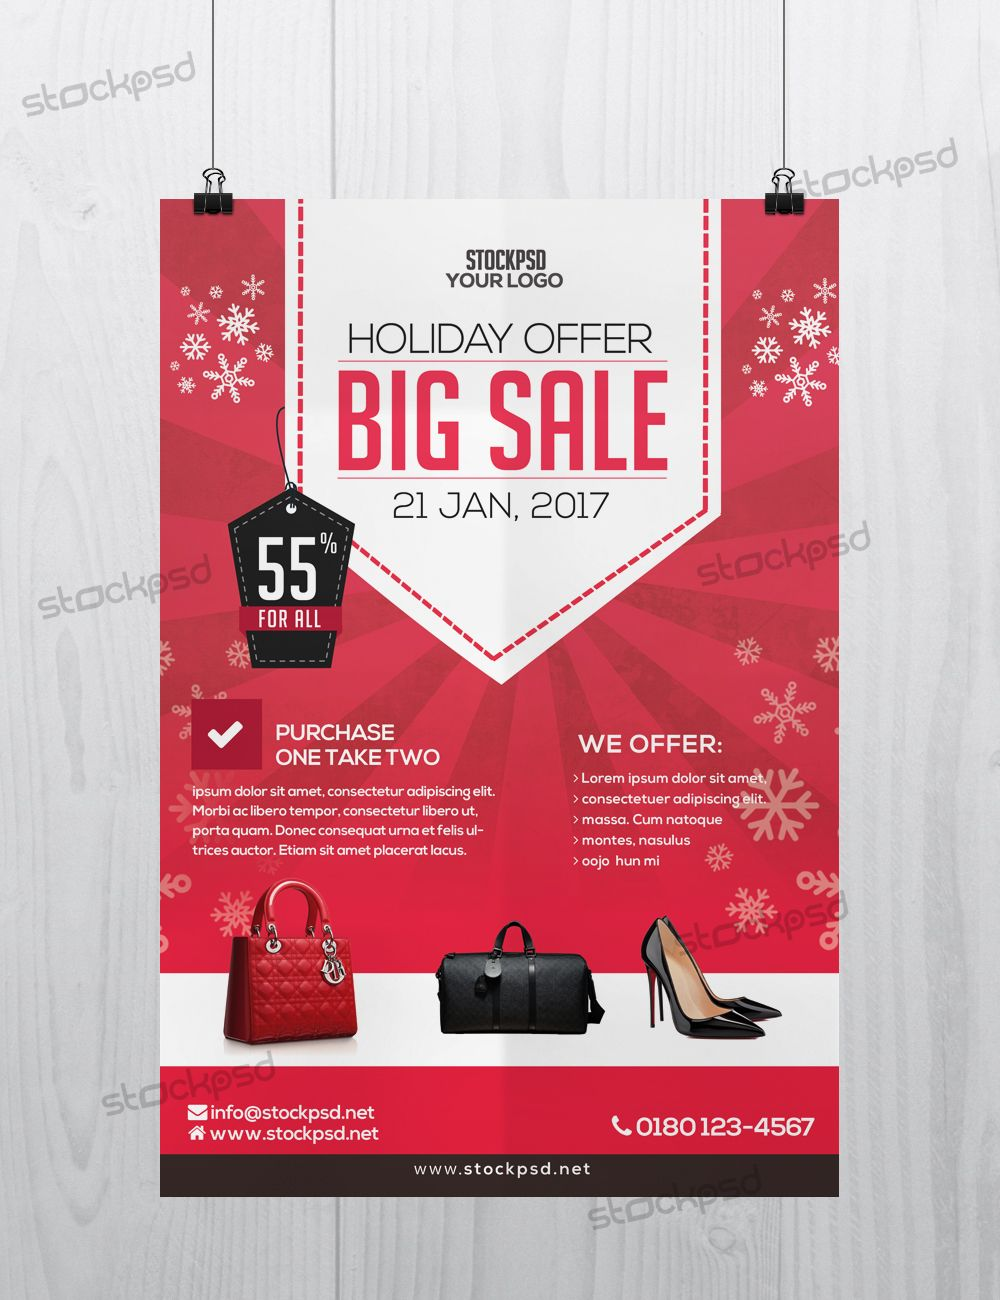 Holiday 2017 Big Sale Free Psd Flyer Template Psd Flyers